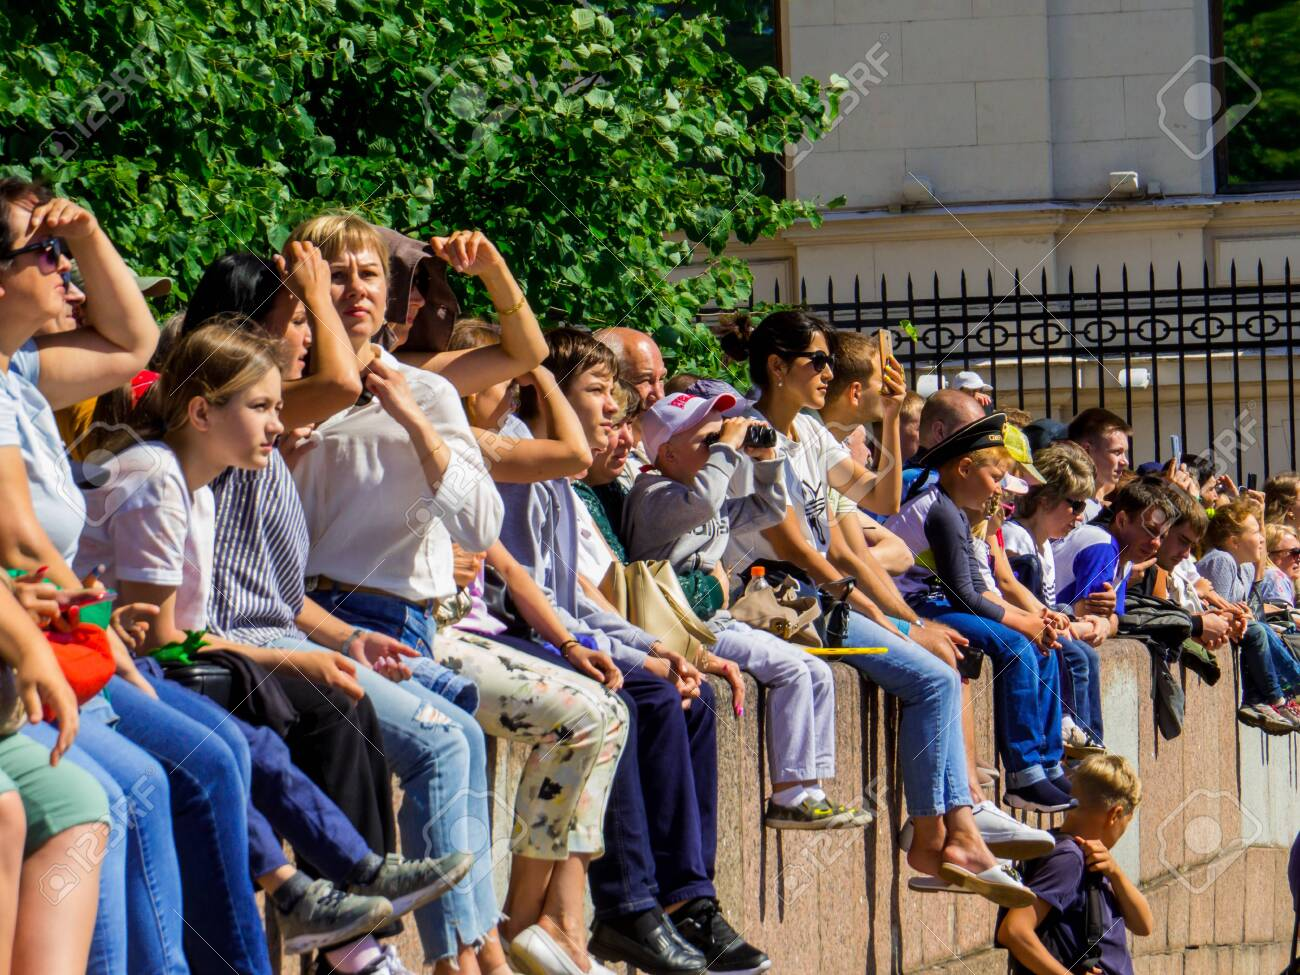 St. Petersburg, Russia - July 26, 2020: People watching the annual celebrations for the Navy Day on the embankment of the Neva River. - 152365084